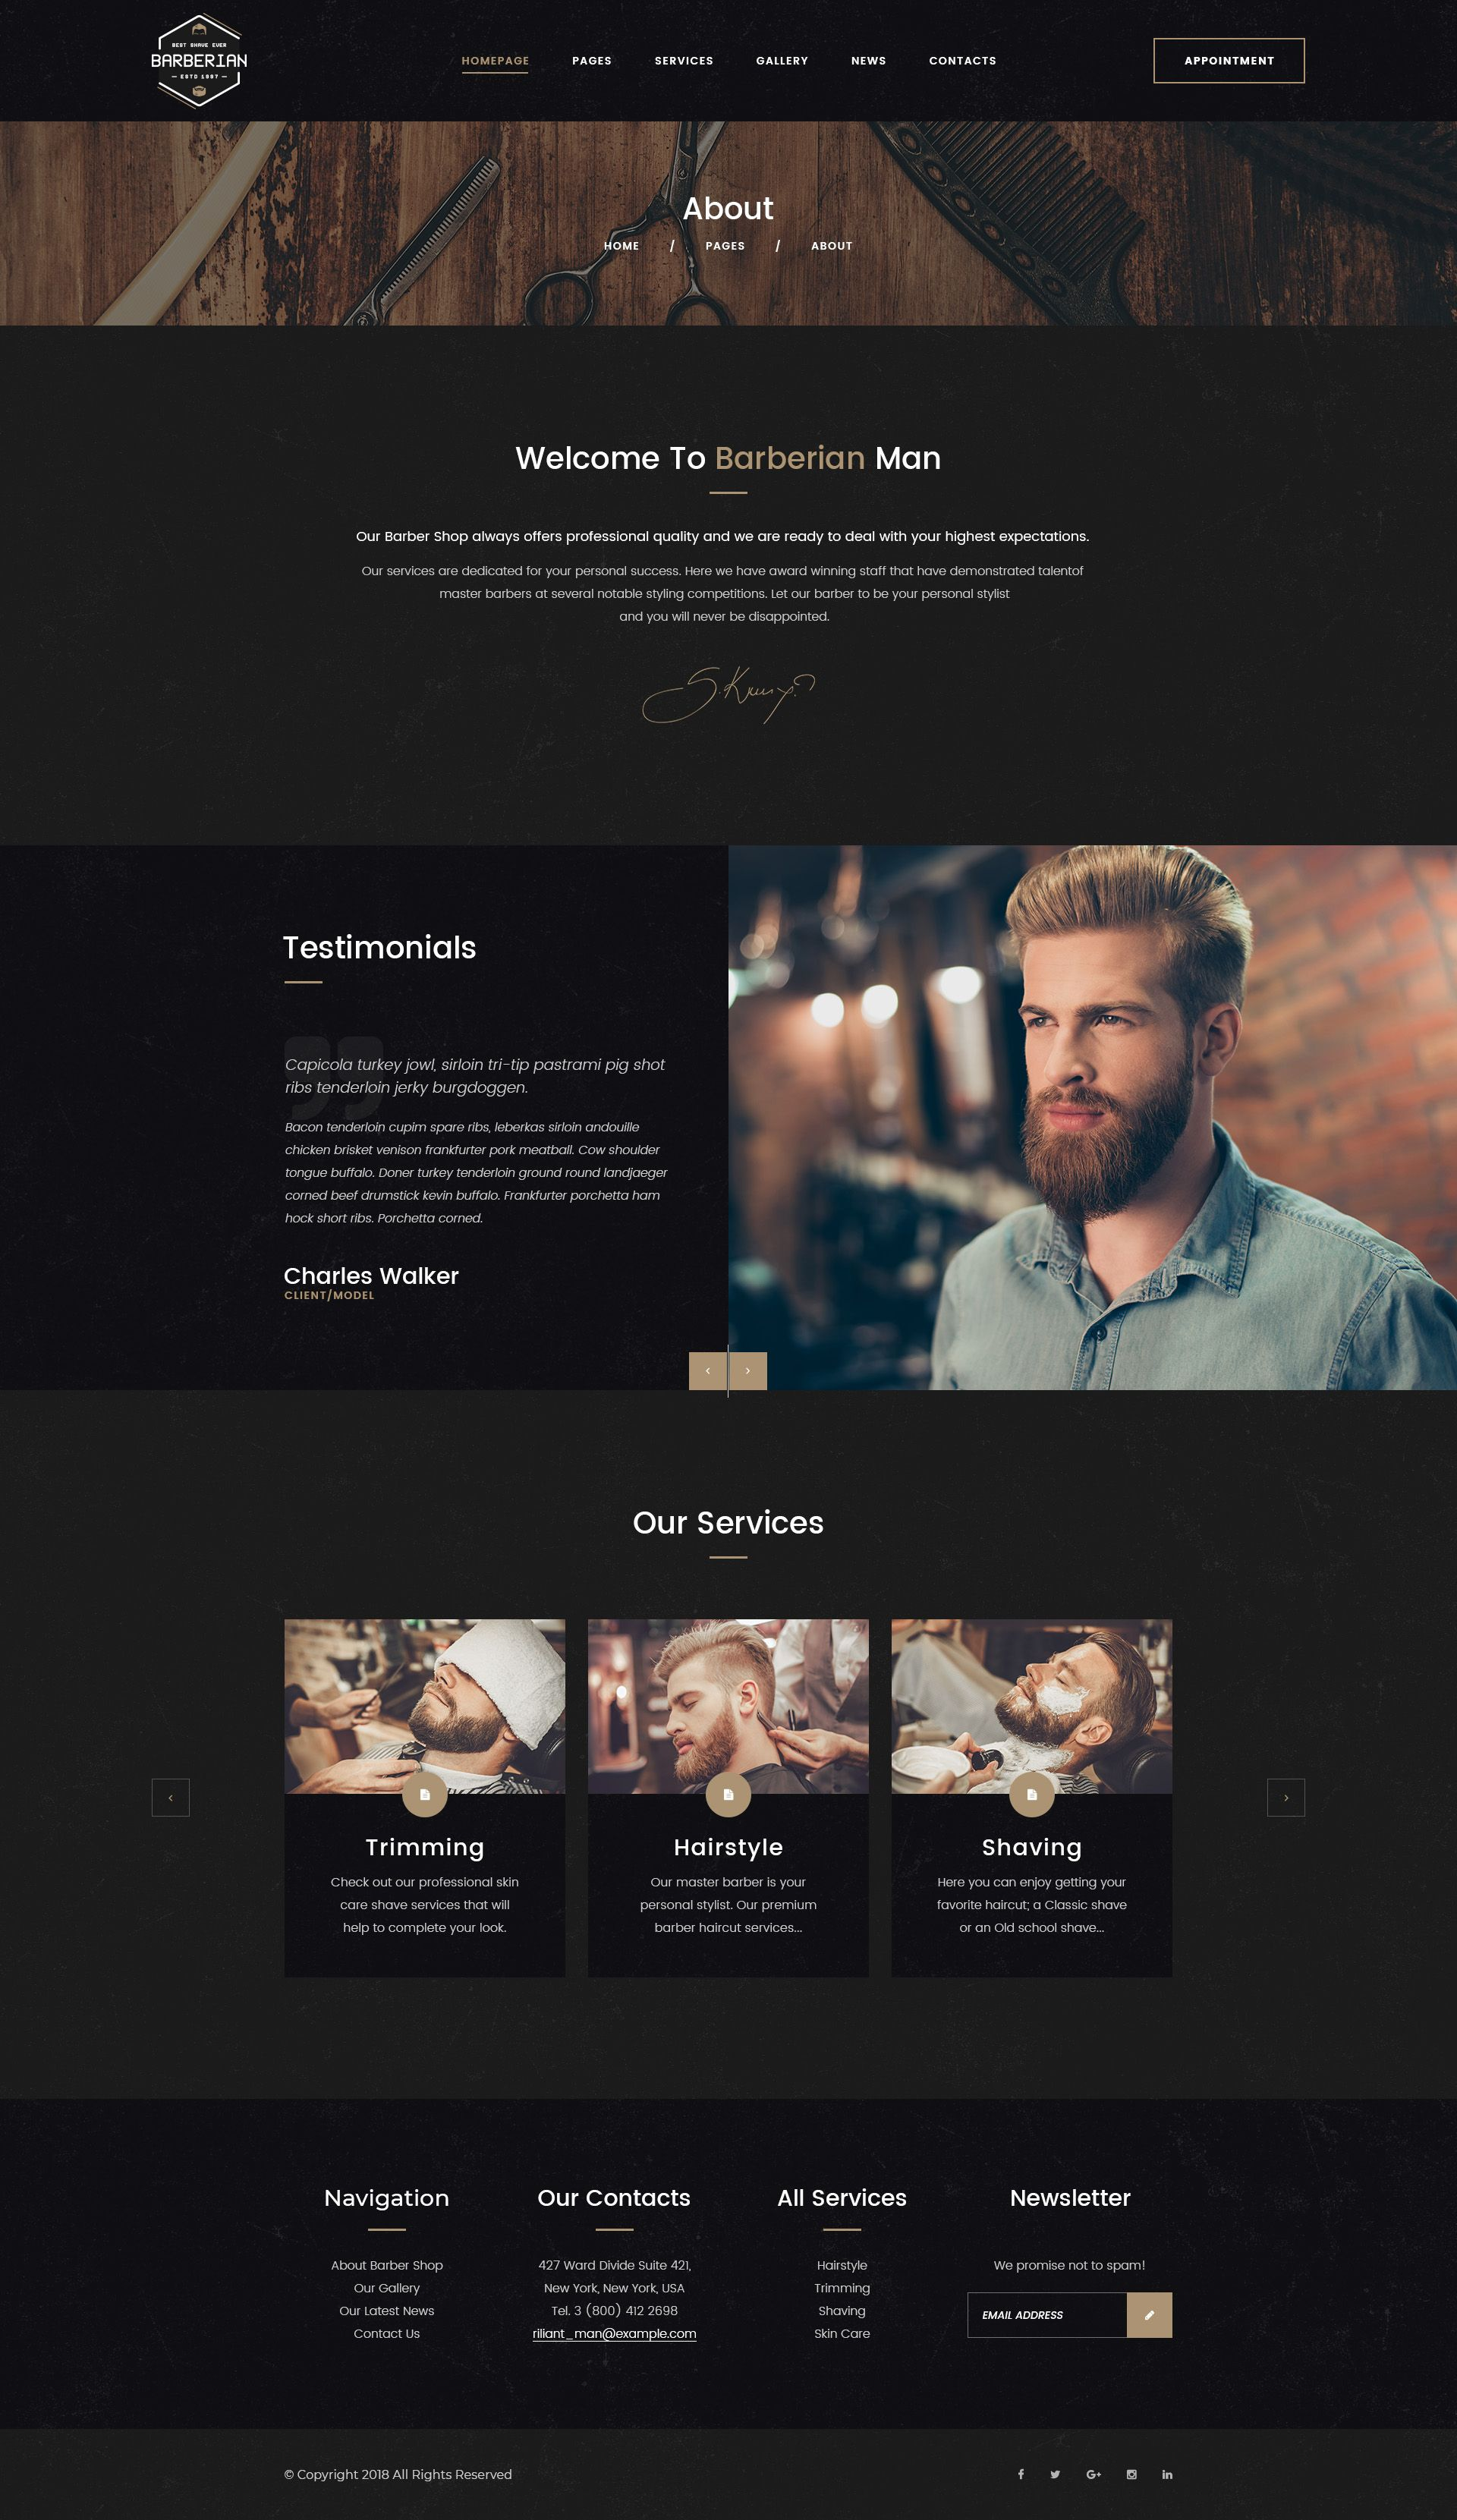 Barberian   Professional Barber Shop & Hair Salons PSD Template Gallery